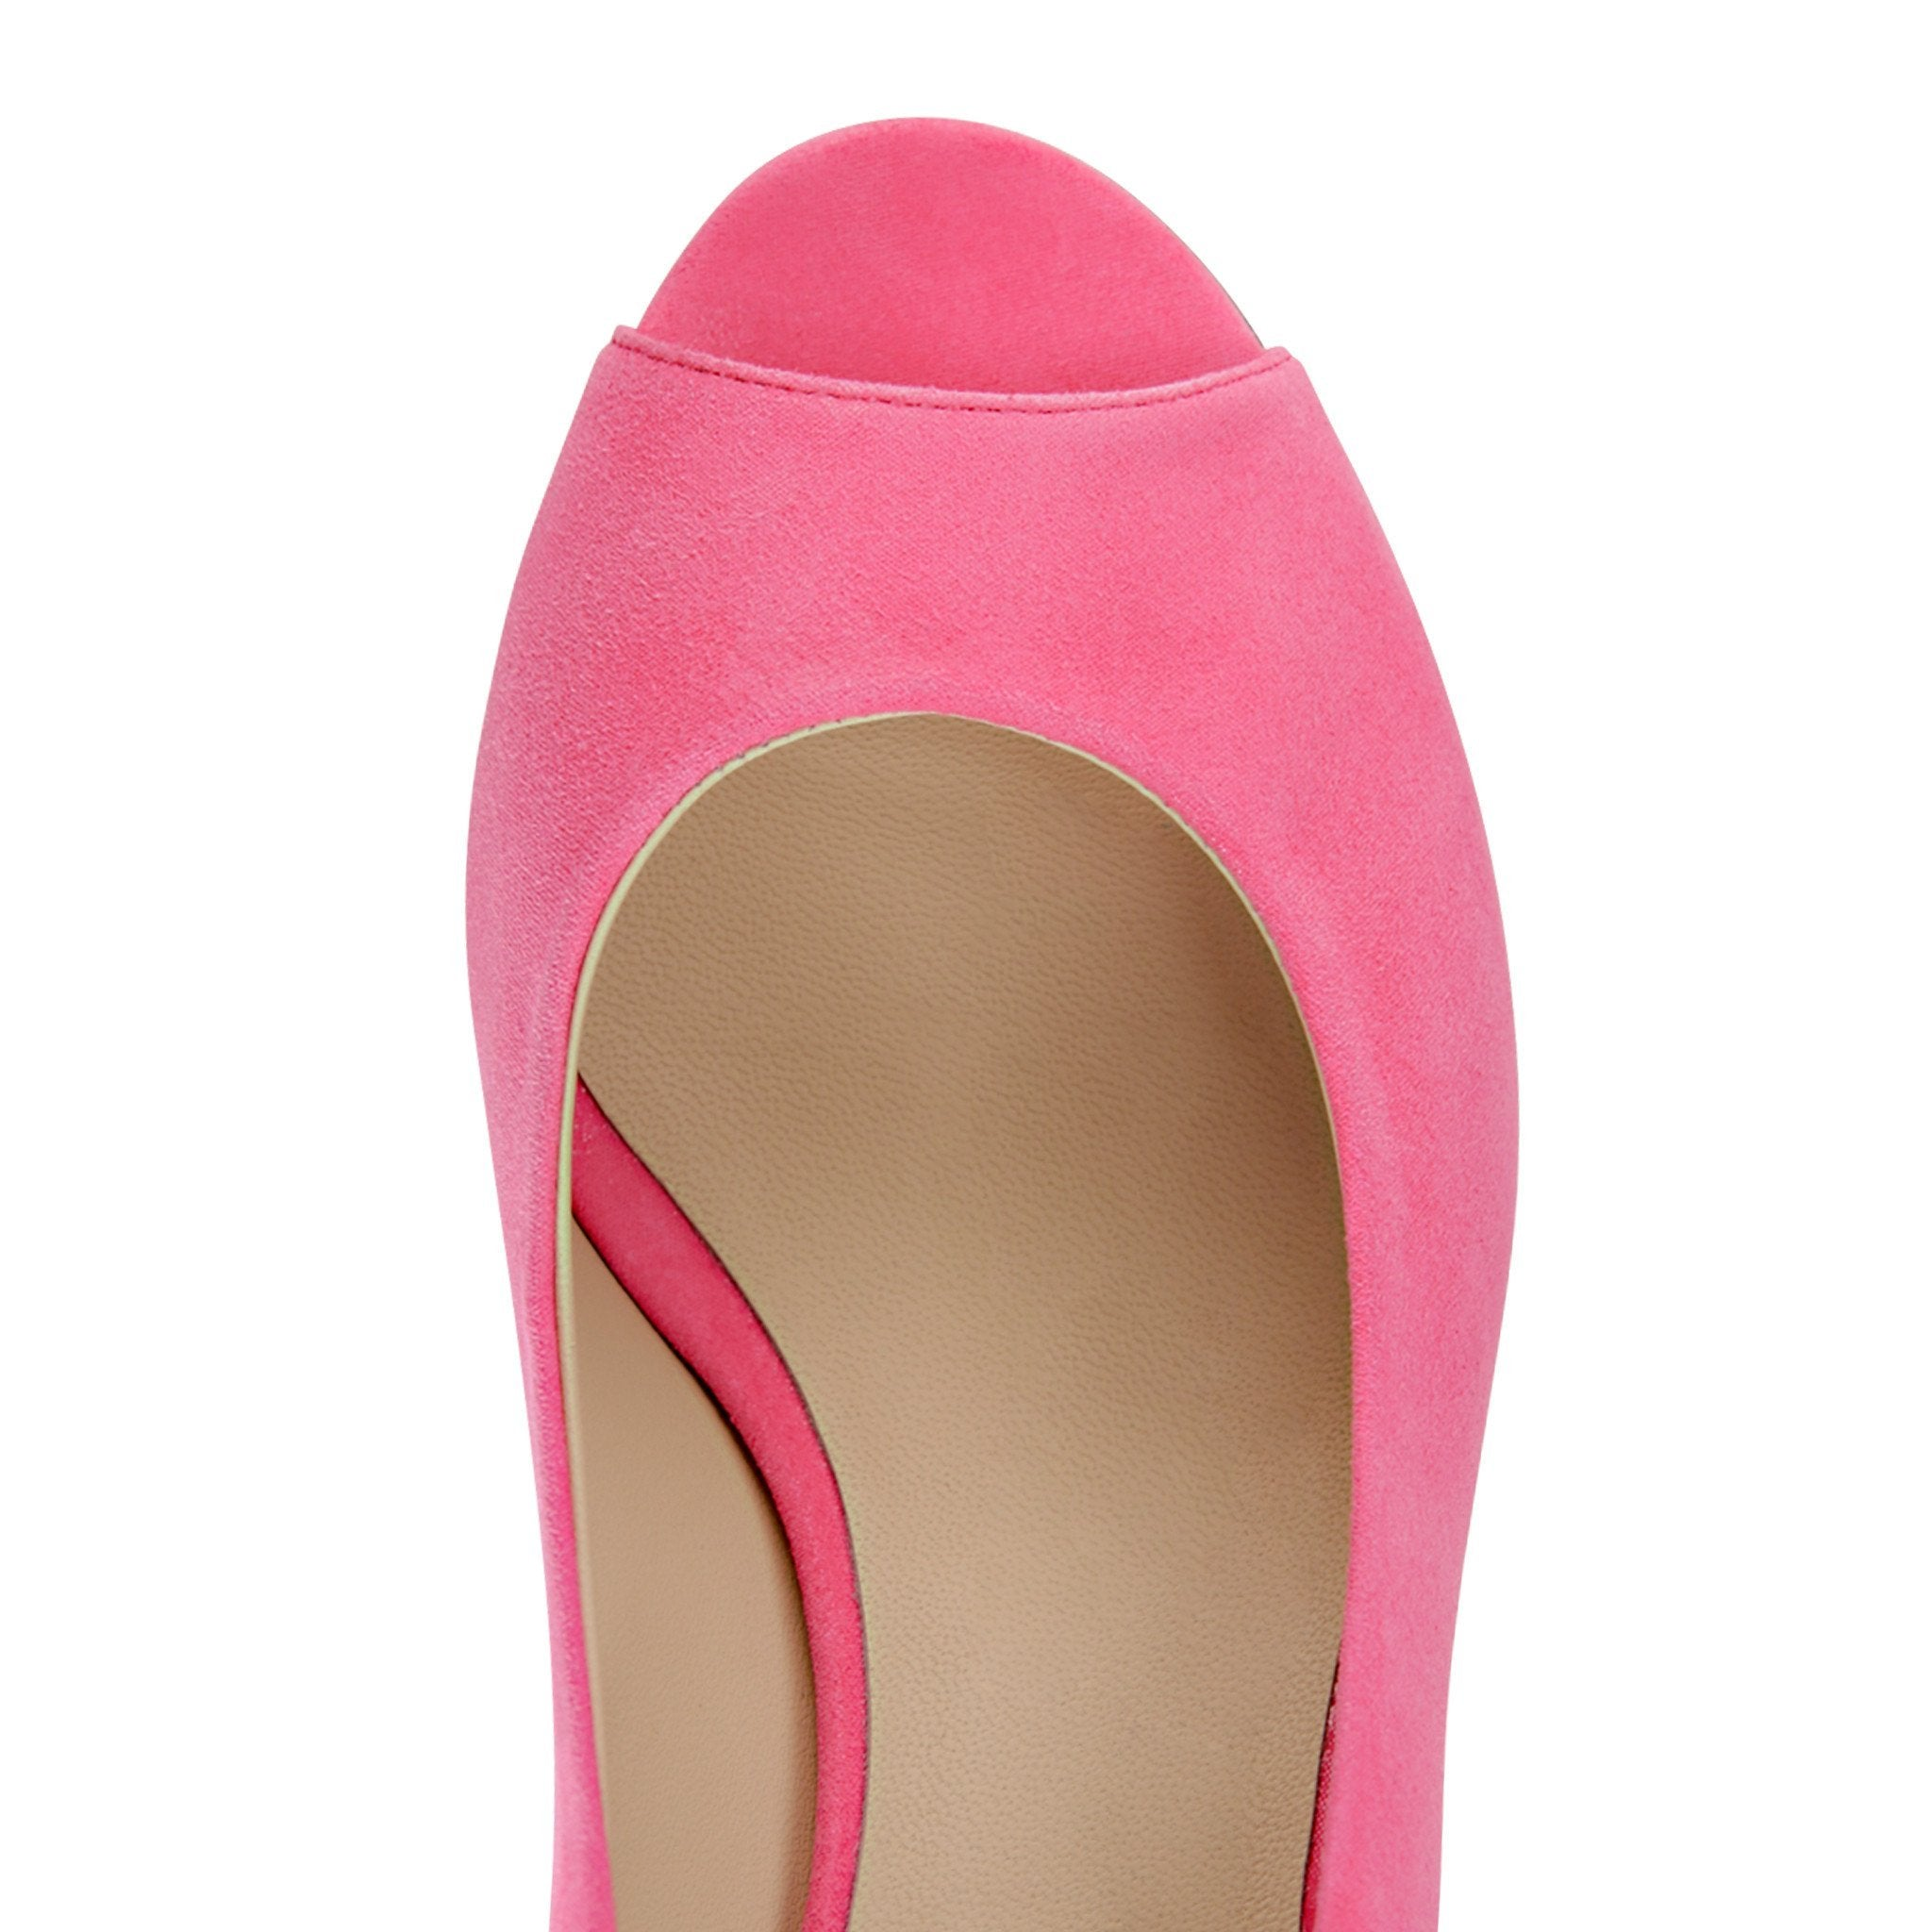 SARDINIA - Hydra Epiphany Pink, VIAJIYU - Women's Hand Made Sustainable Luxury Shoes. Made in Italy. Made to Order.